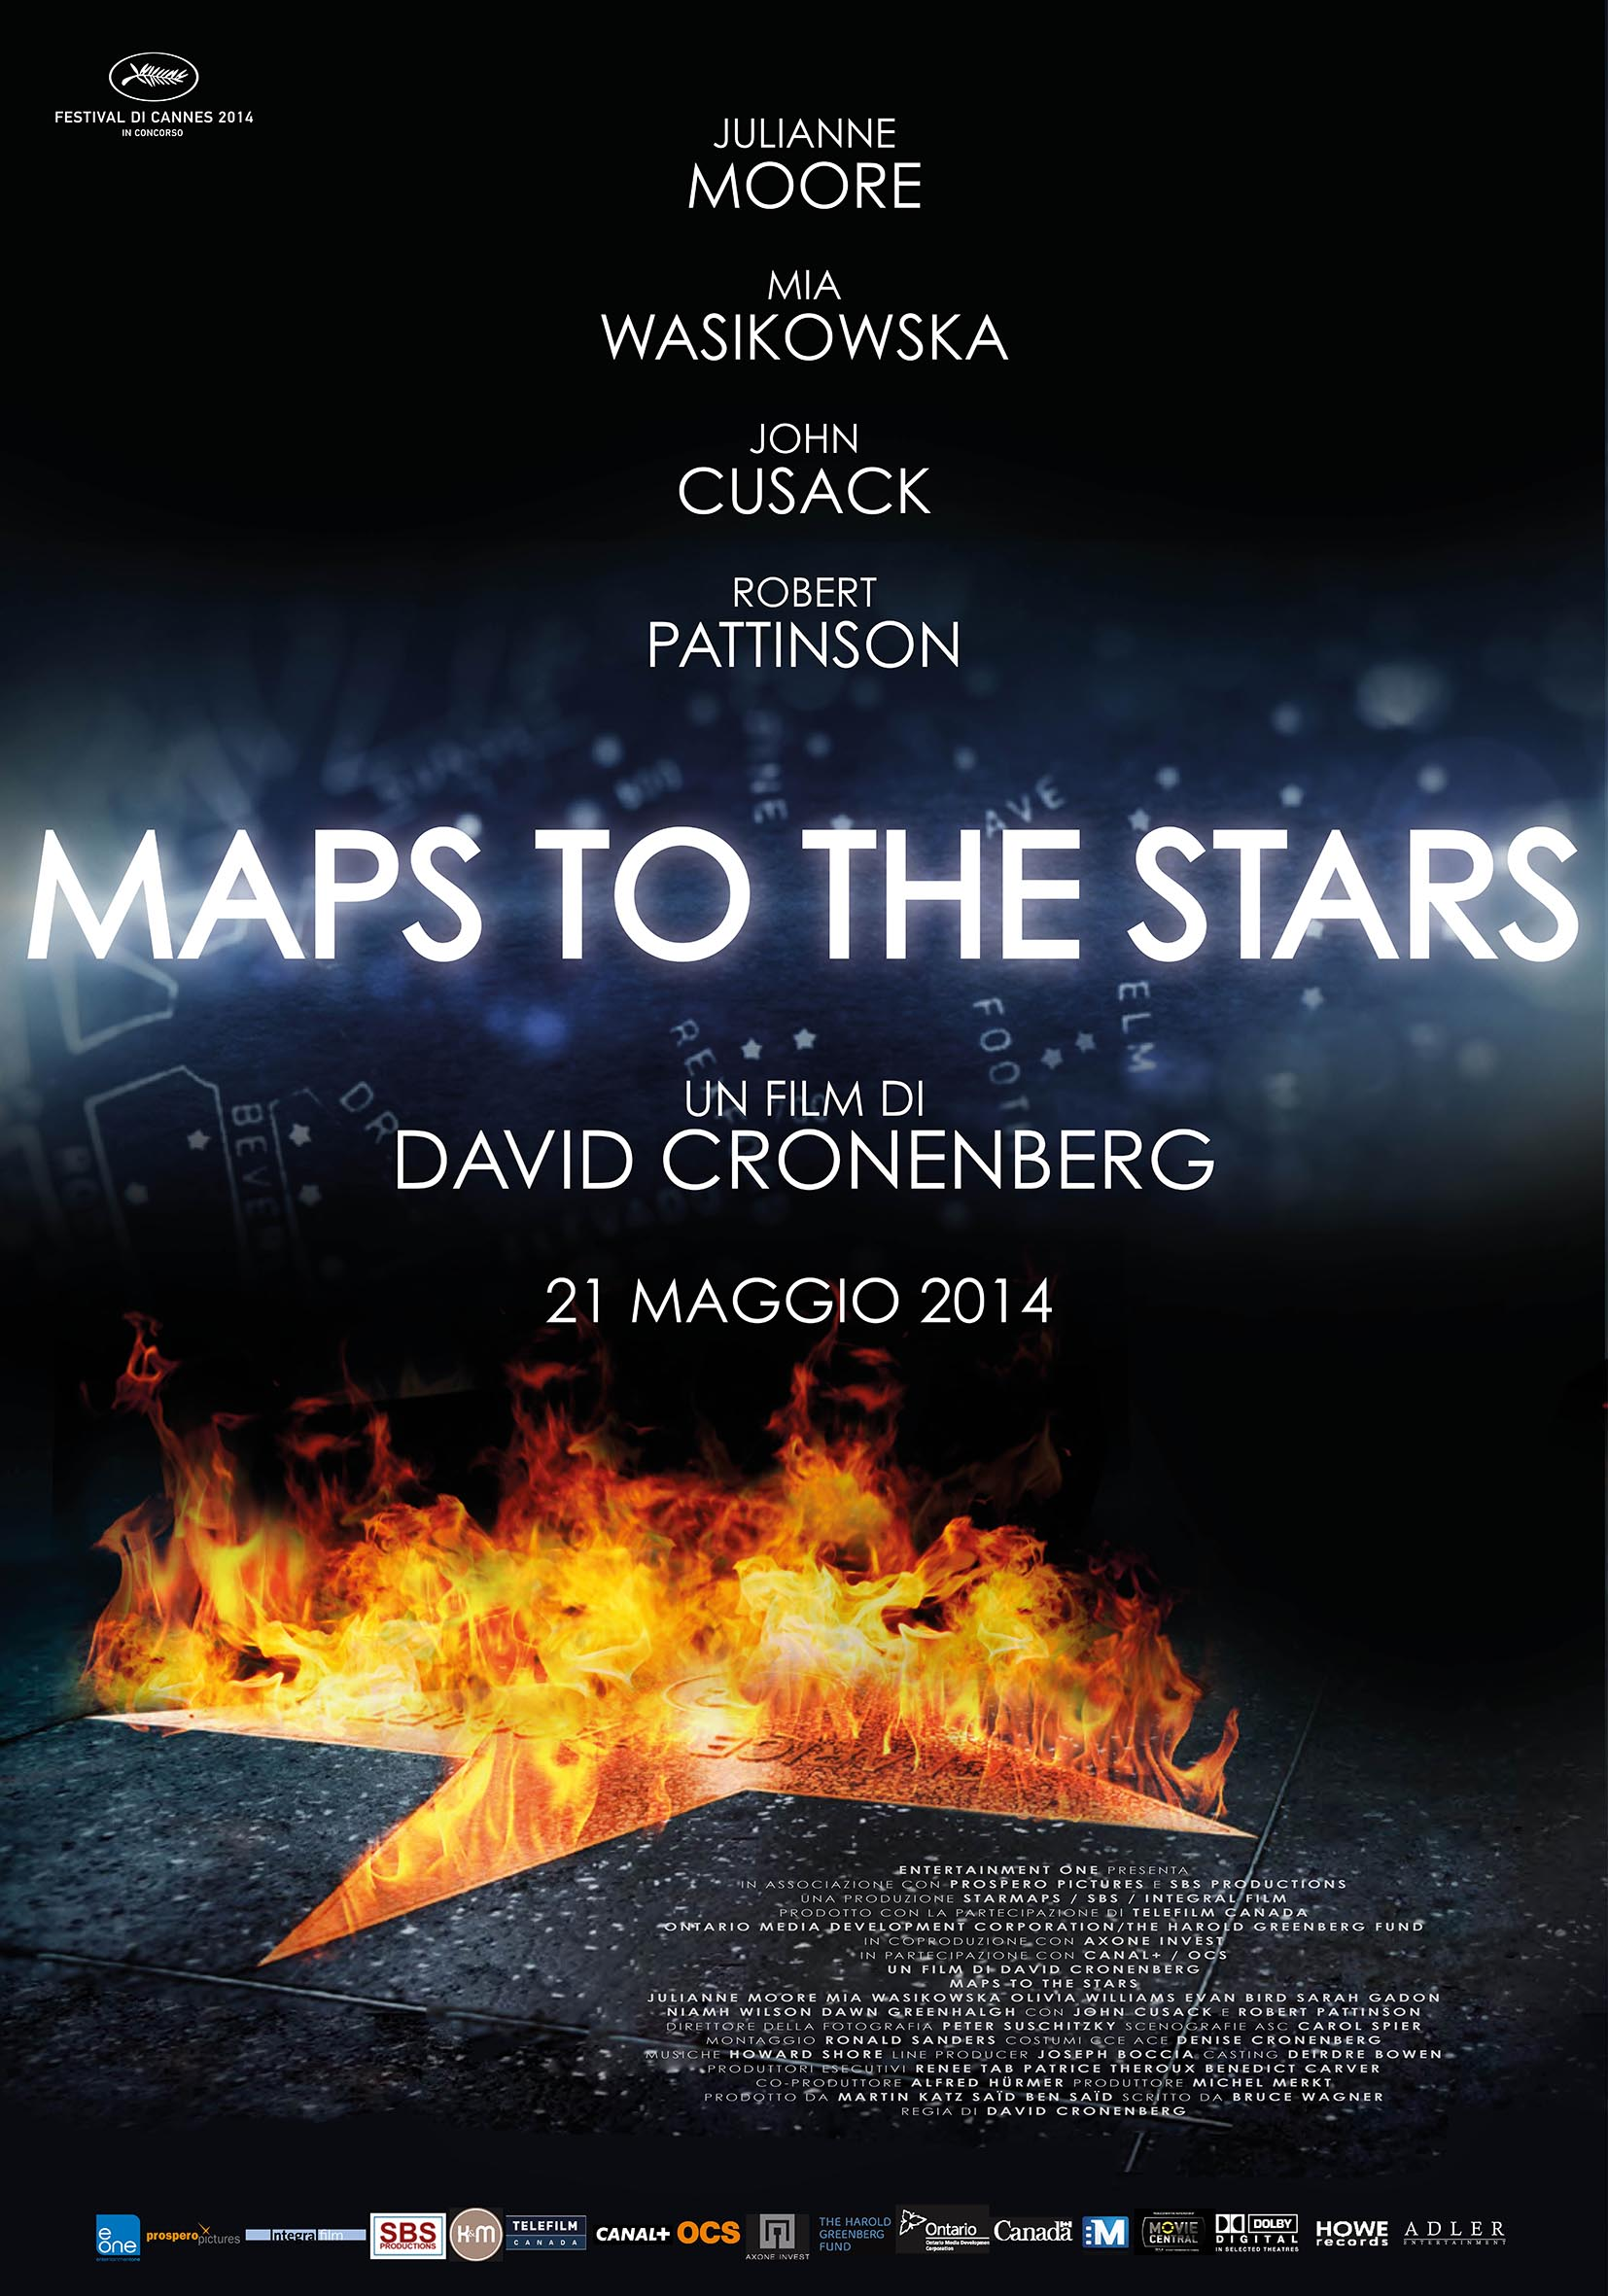 맵 투더 스타 (Maps to the Stars, 2014)